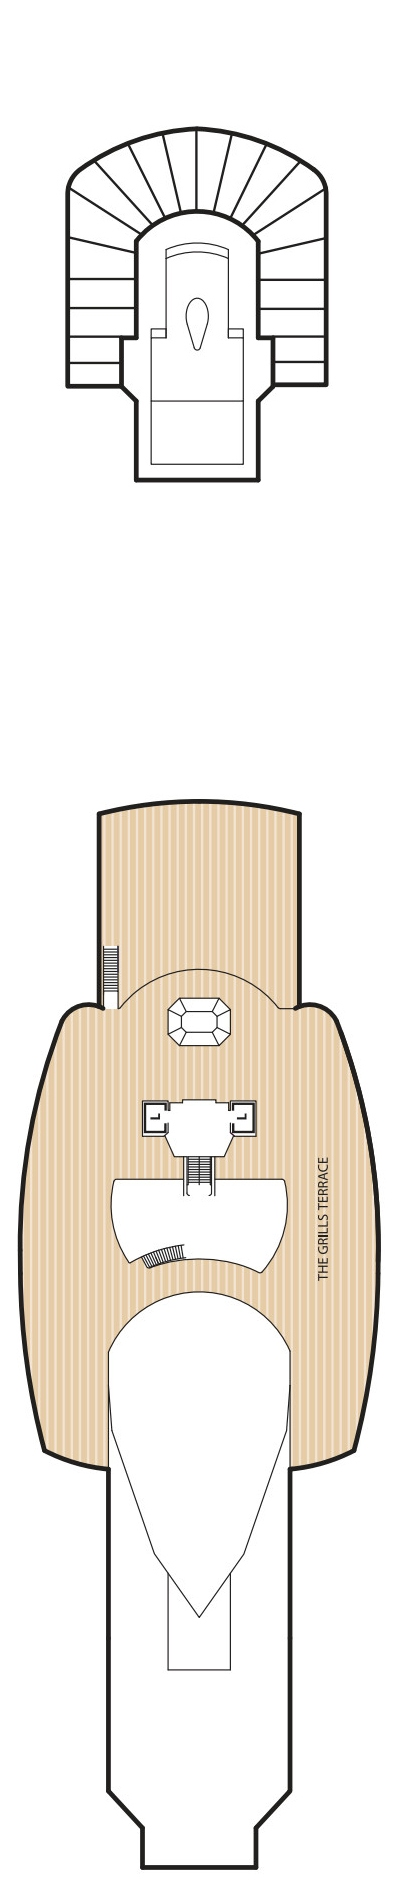 Queen Elizabeth Deck 12 layout